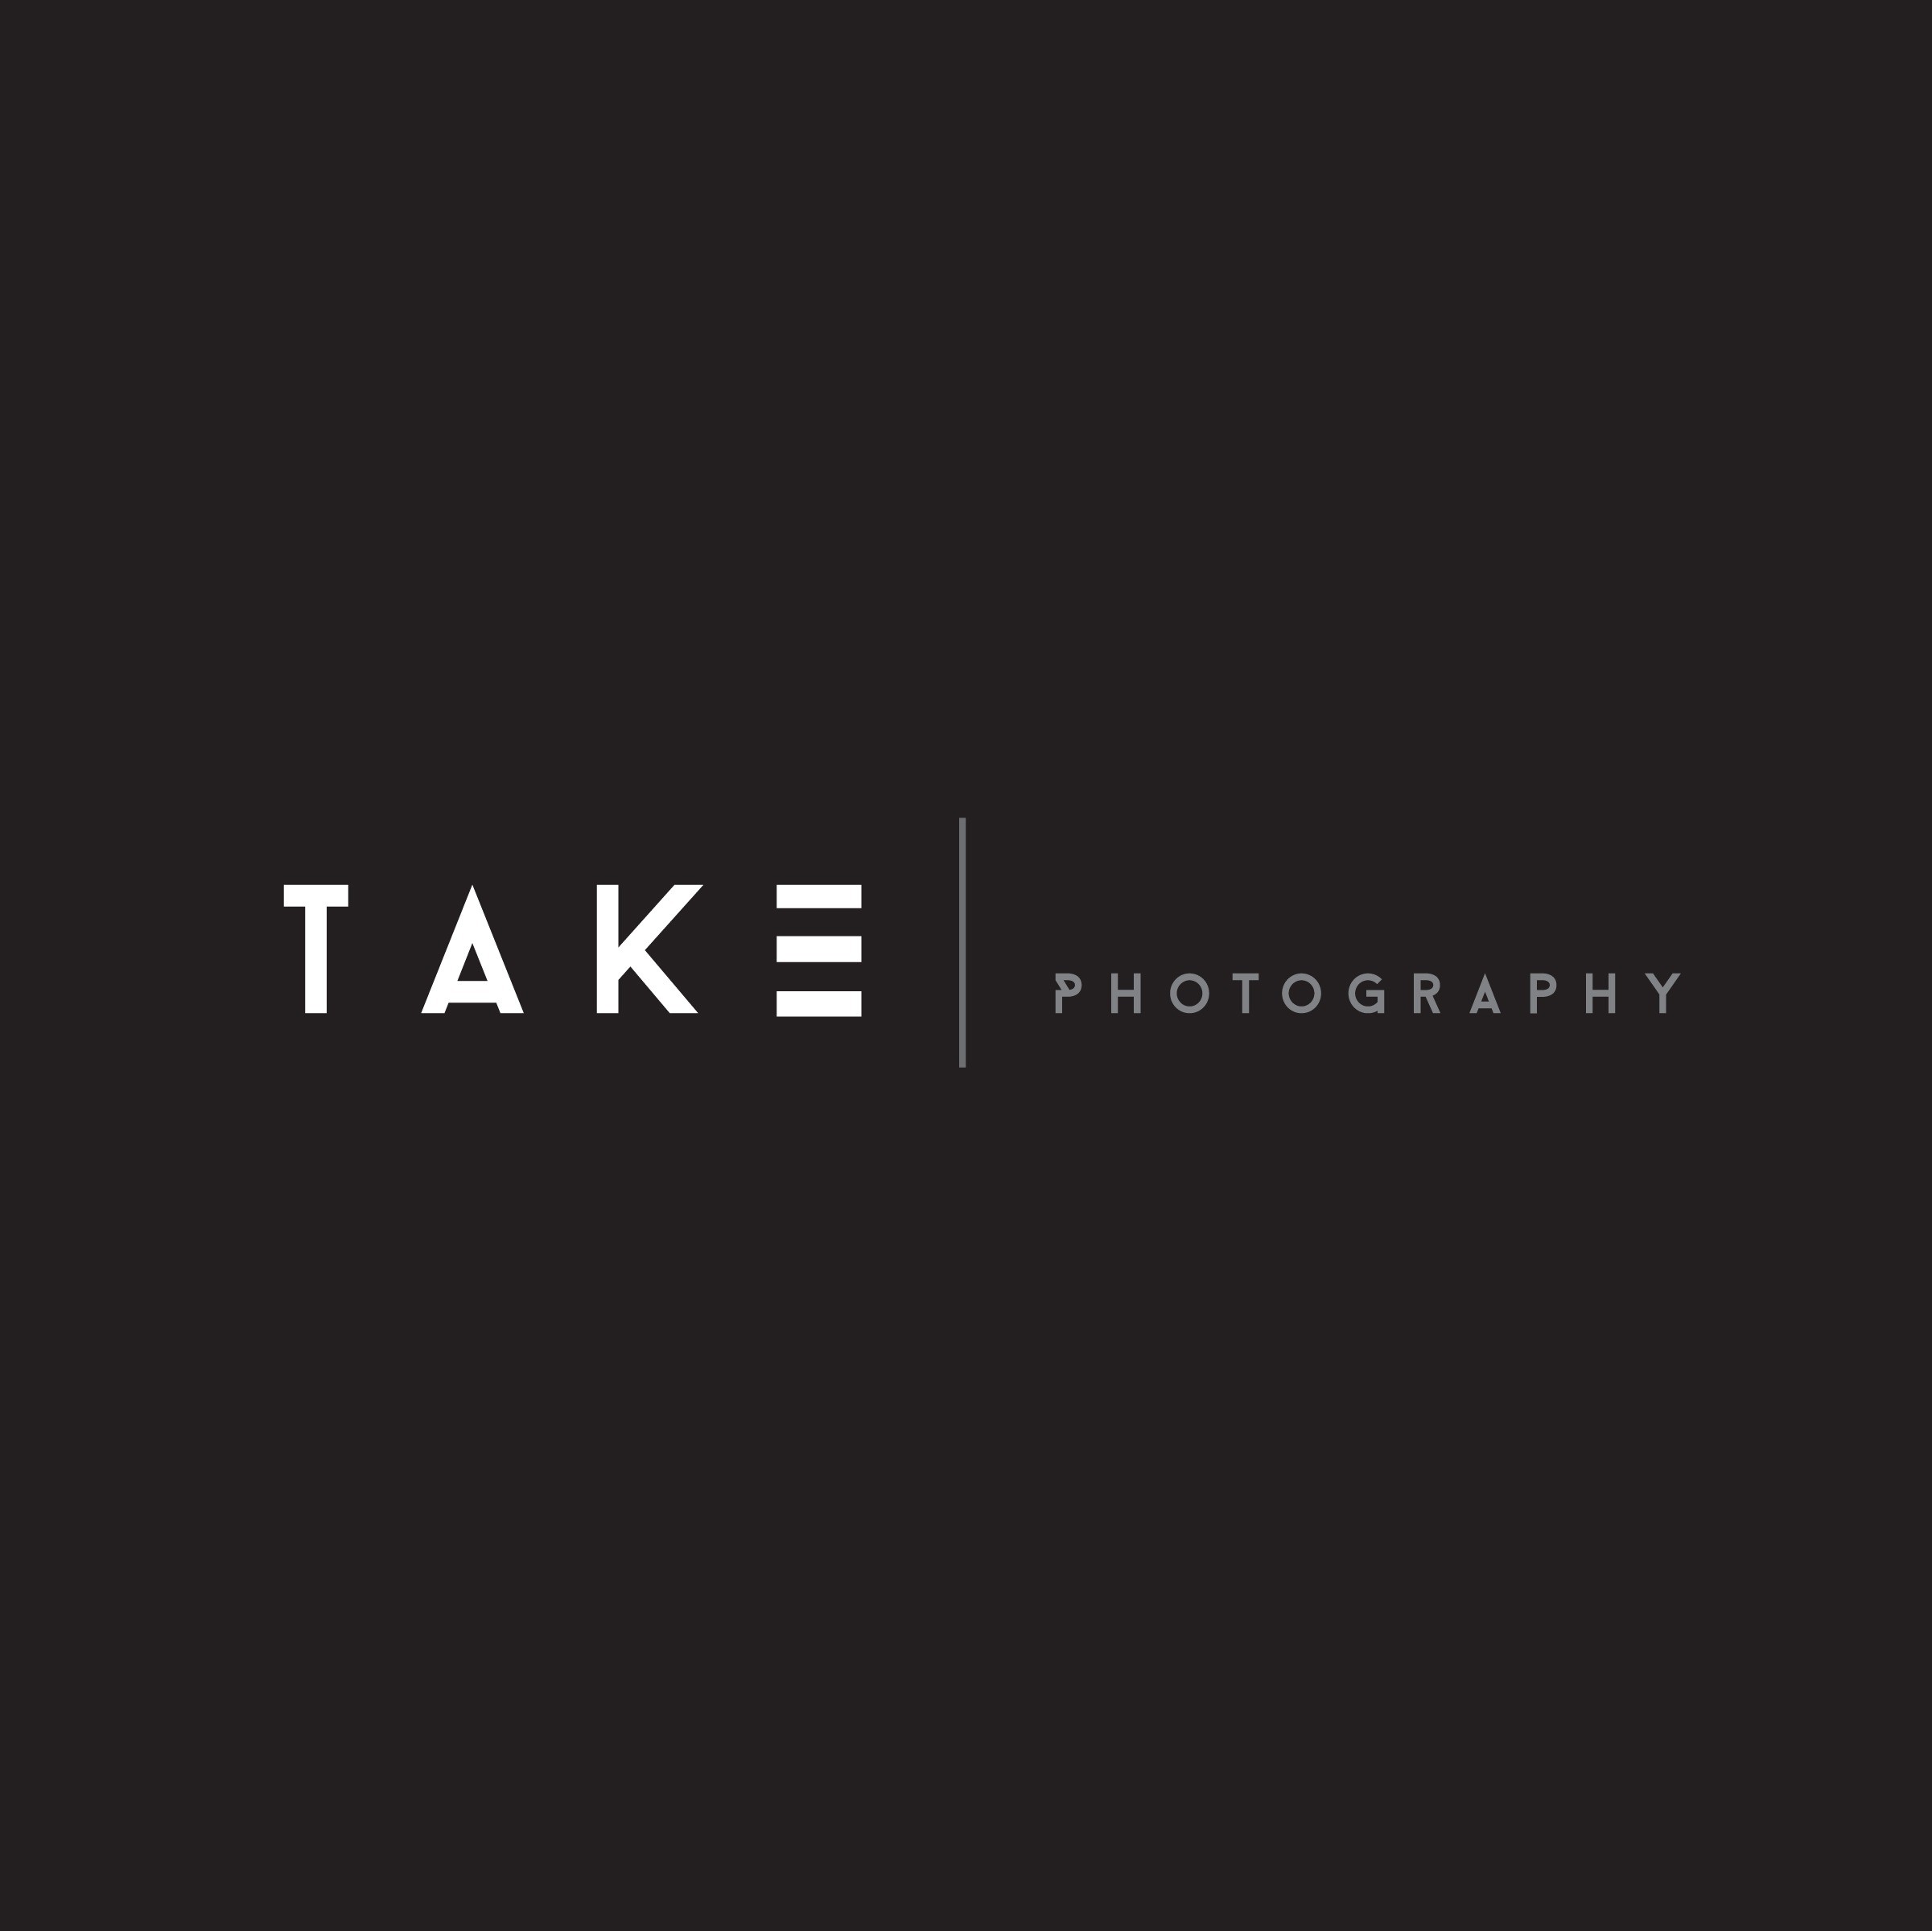 Take Photography